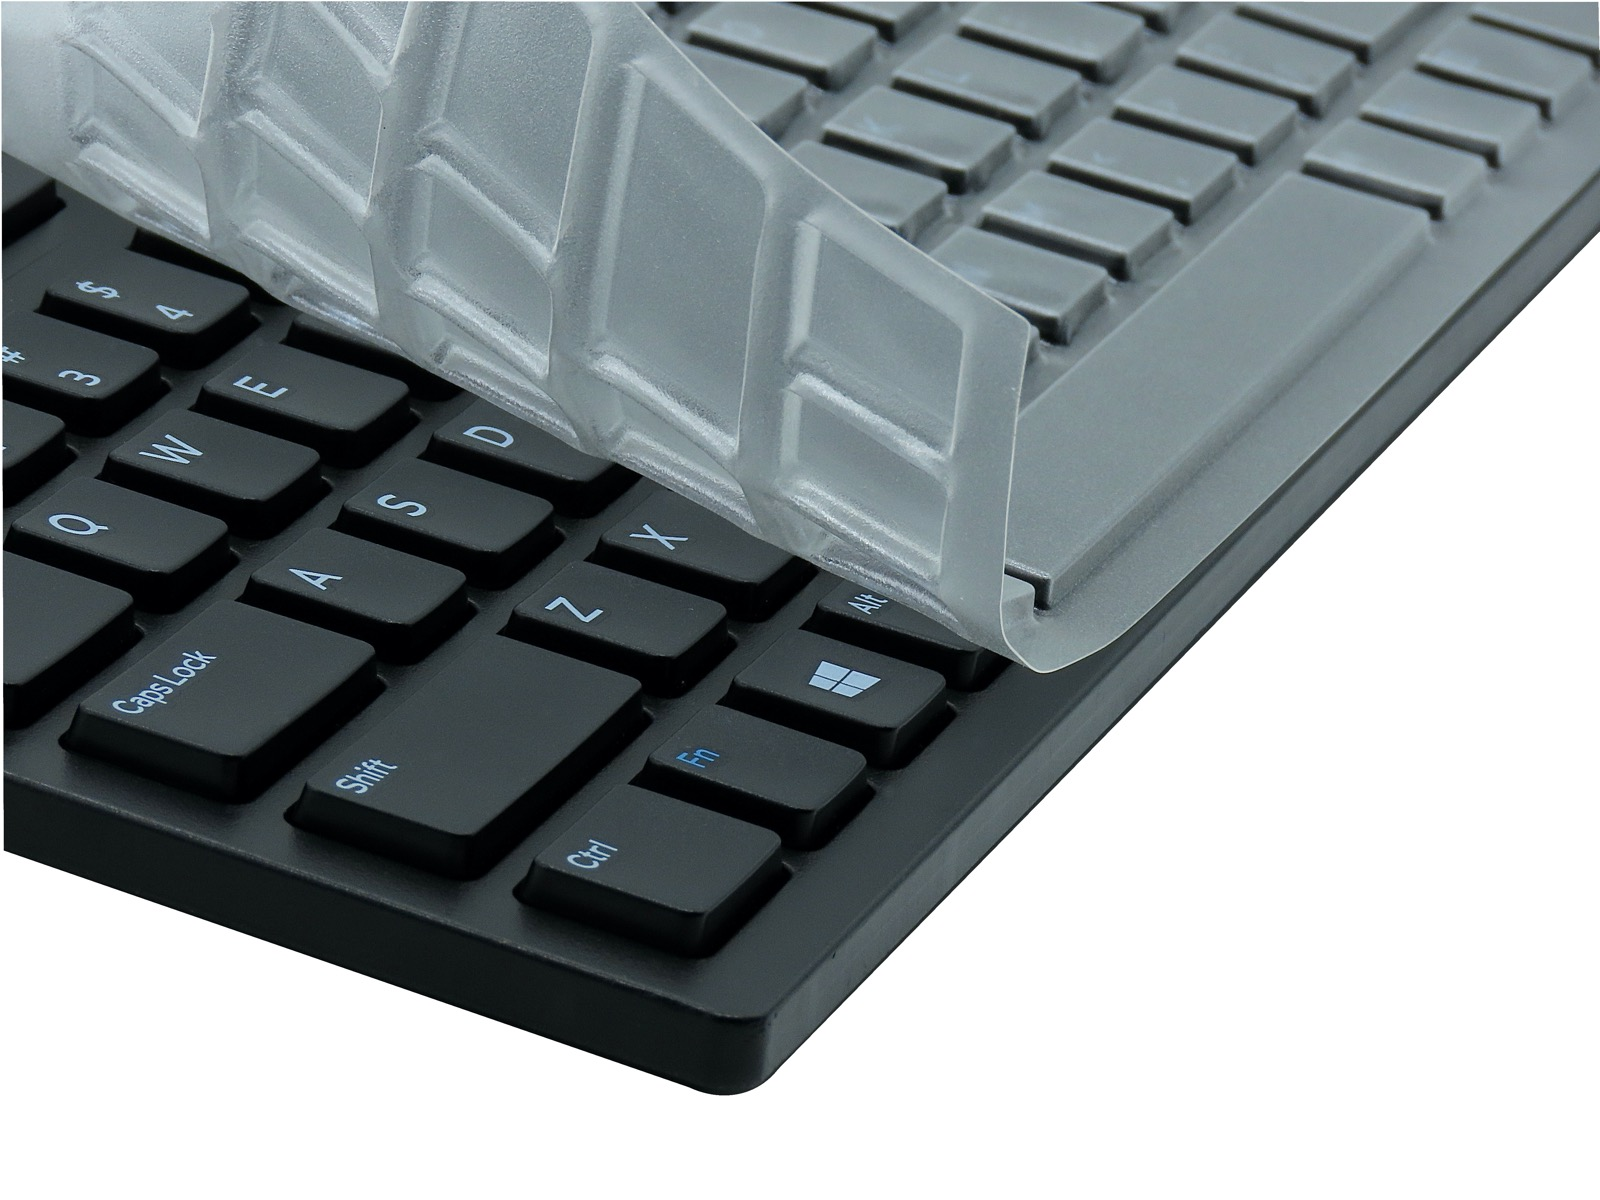 EasySwap Keyboard Covers (5 PACK) for Dell KB216 Keyboard